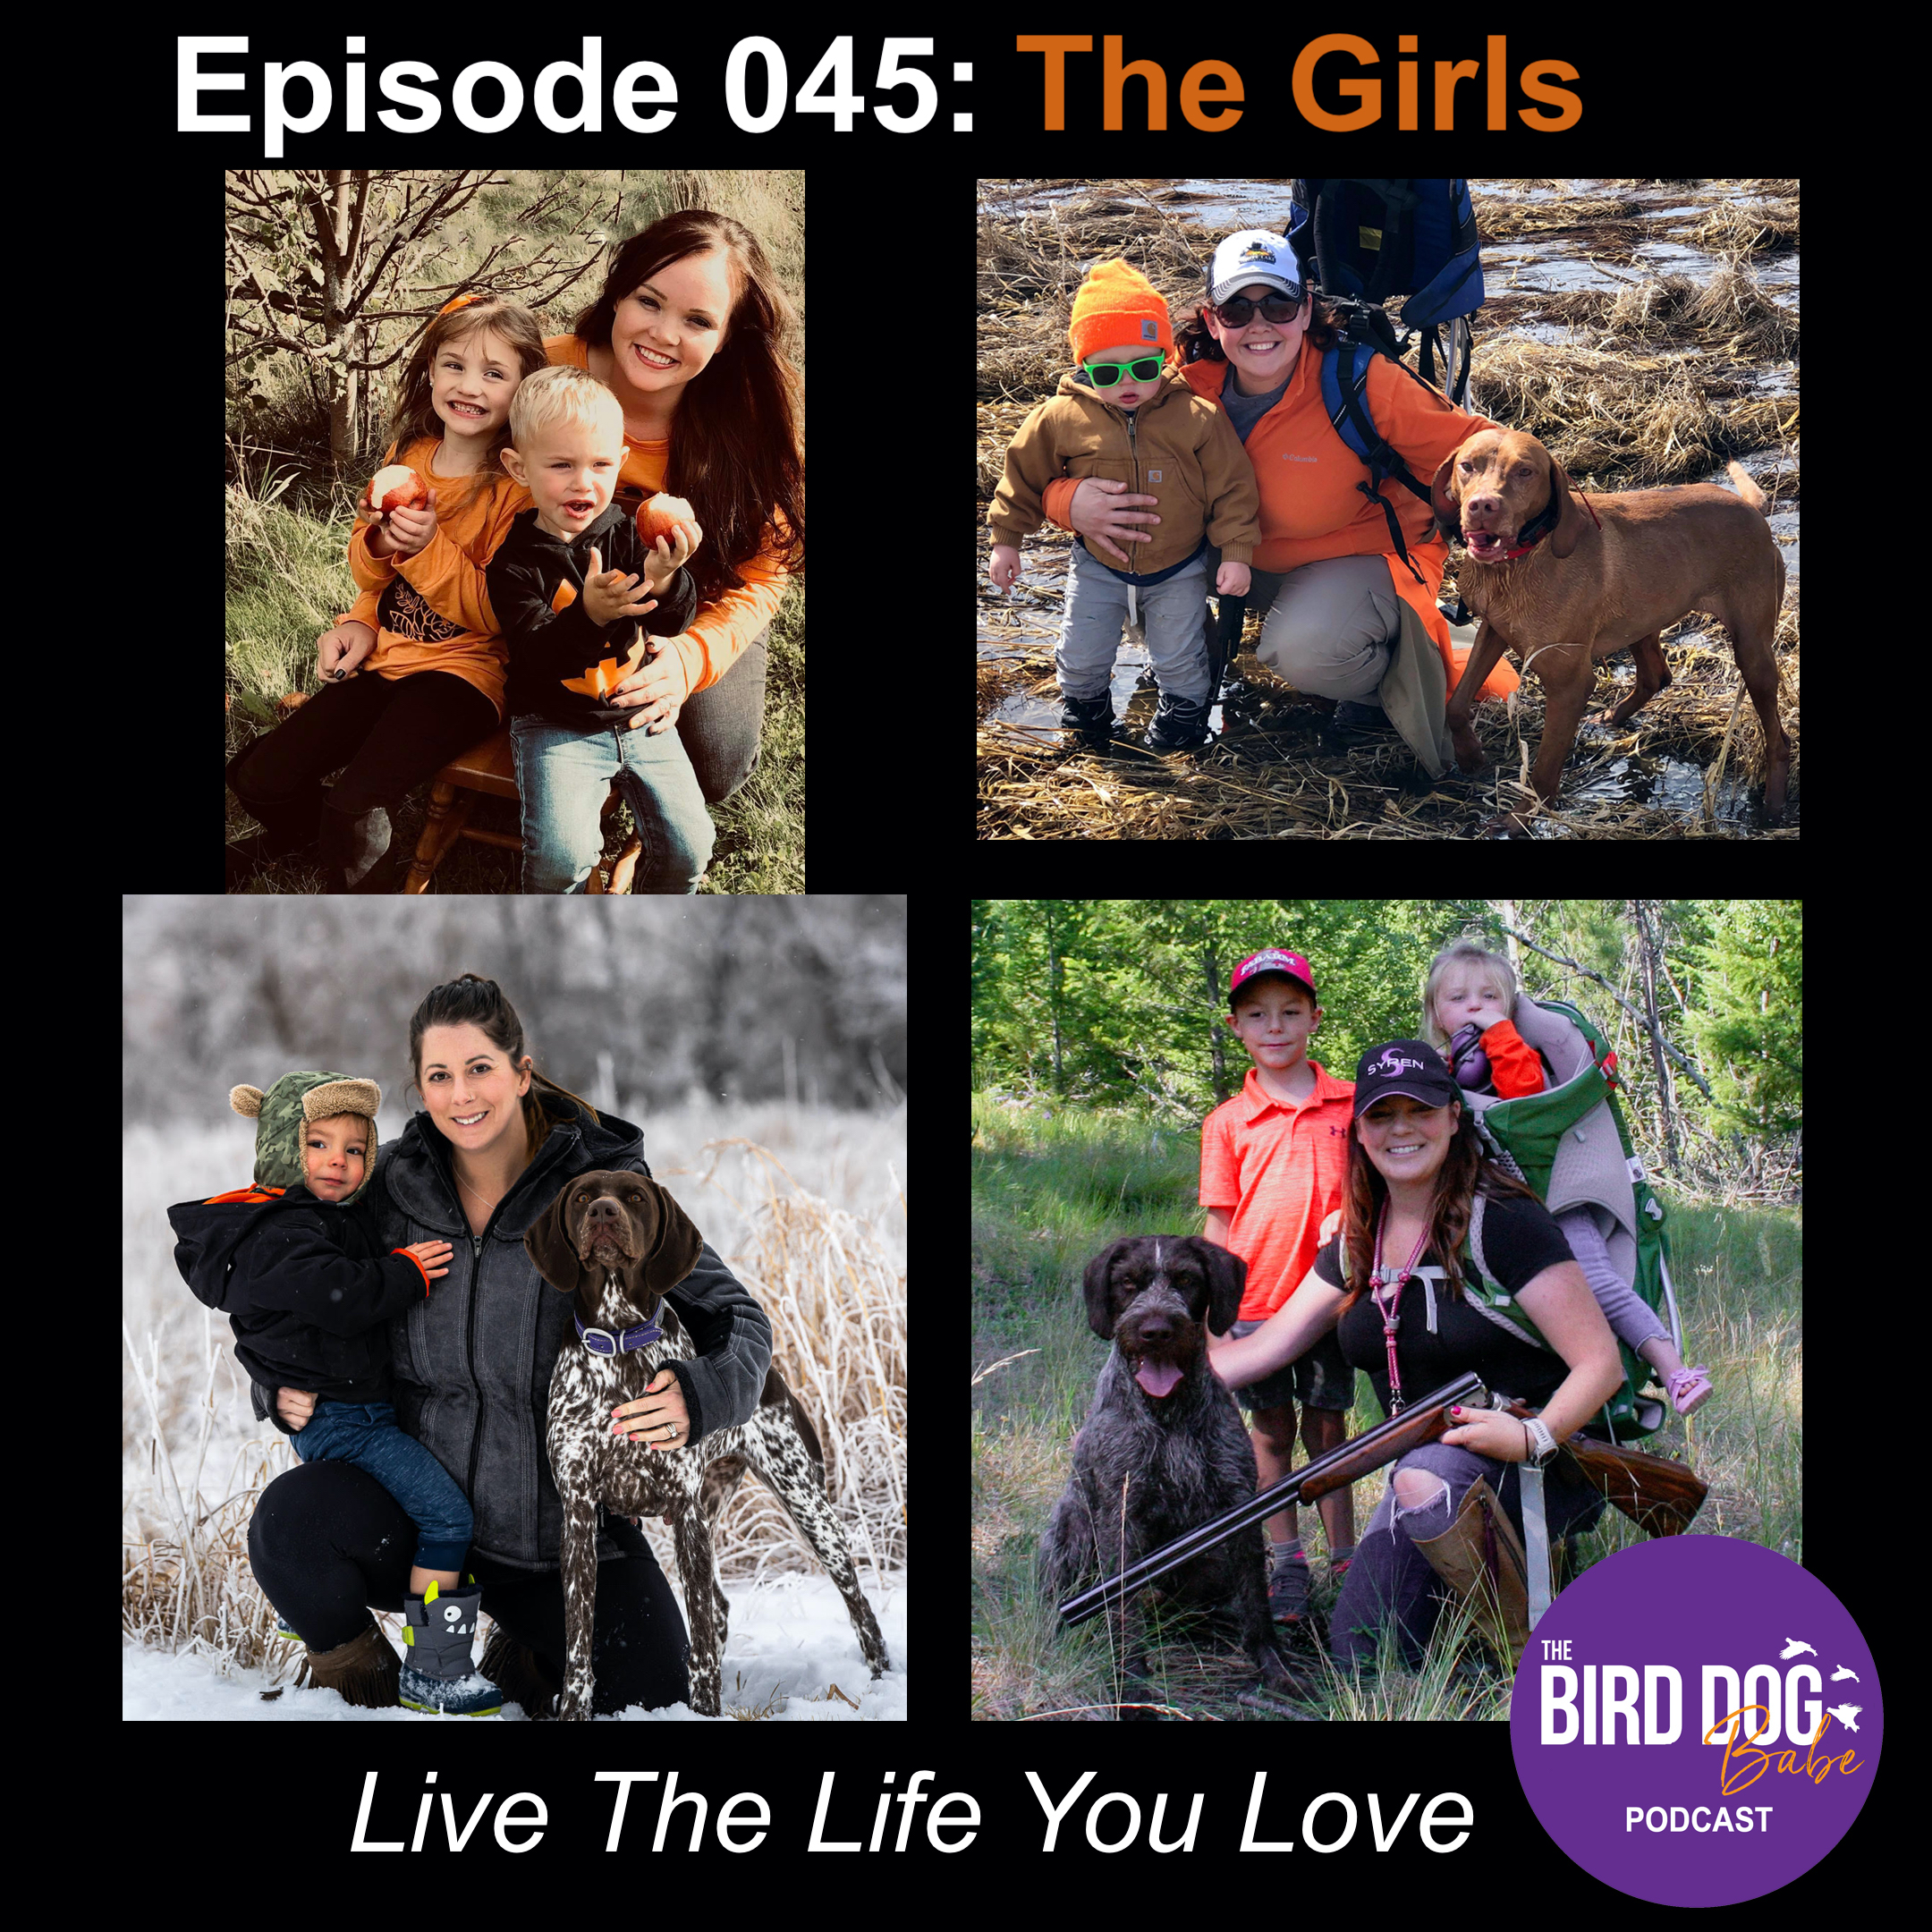 Episode 045: Live The Life You Love, Part 1 w/The Girls